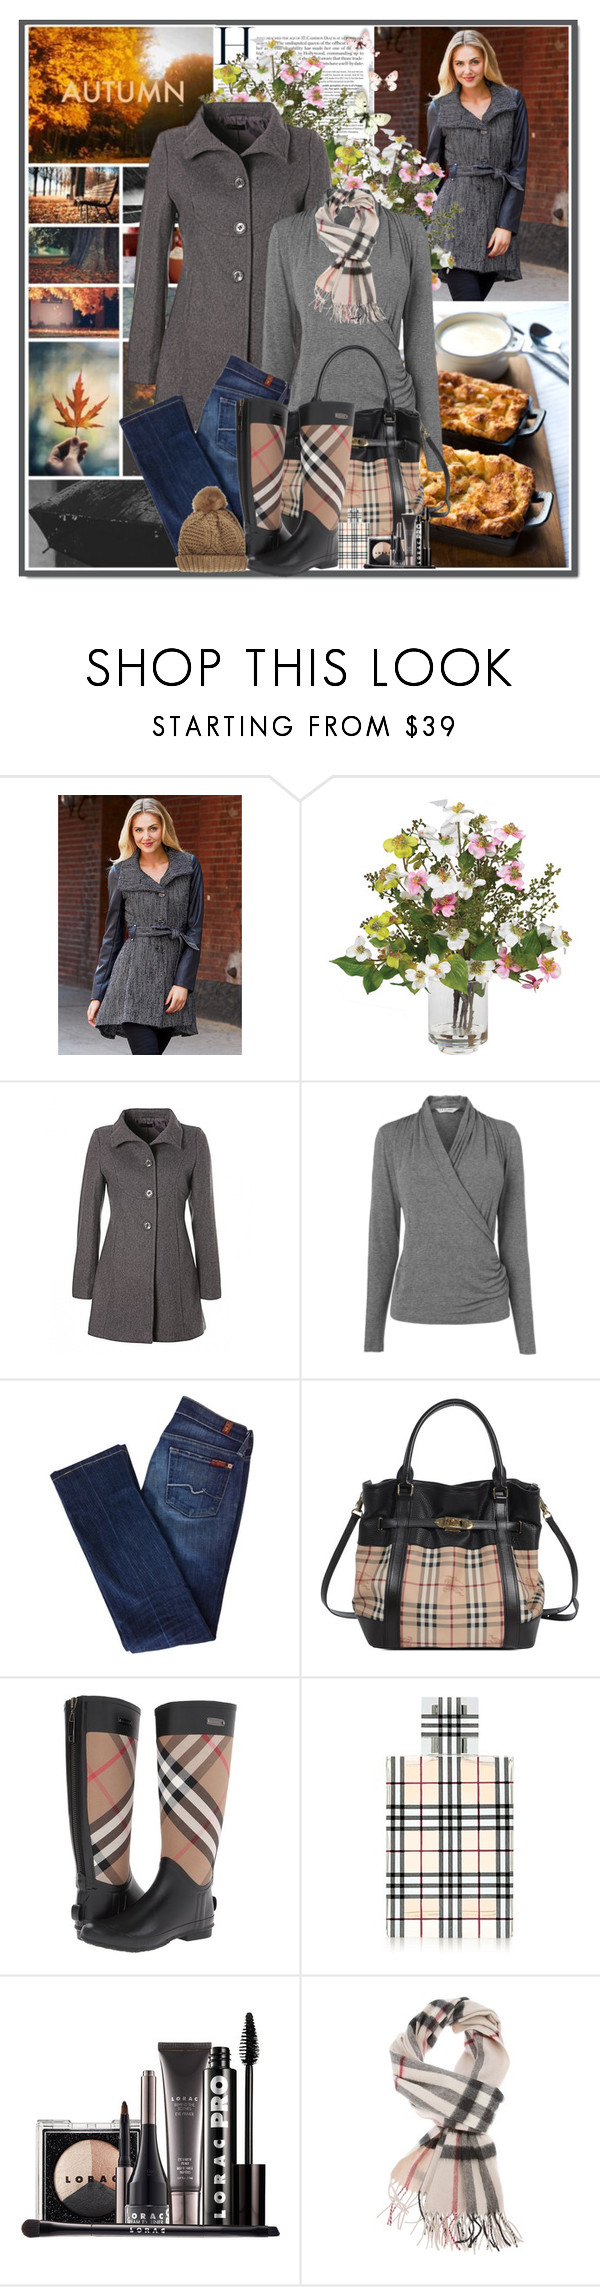 """Burberry Wellies"" by veroniqueleon ❤ liked on Polyvore featuring Steve Madden, Nearly Natural, L.K.Bennett, 7 For All Mankind, Burberry, LORAC and Topshop"